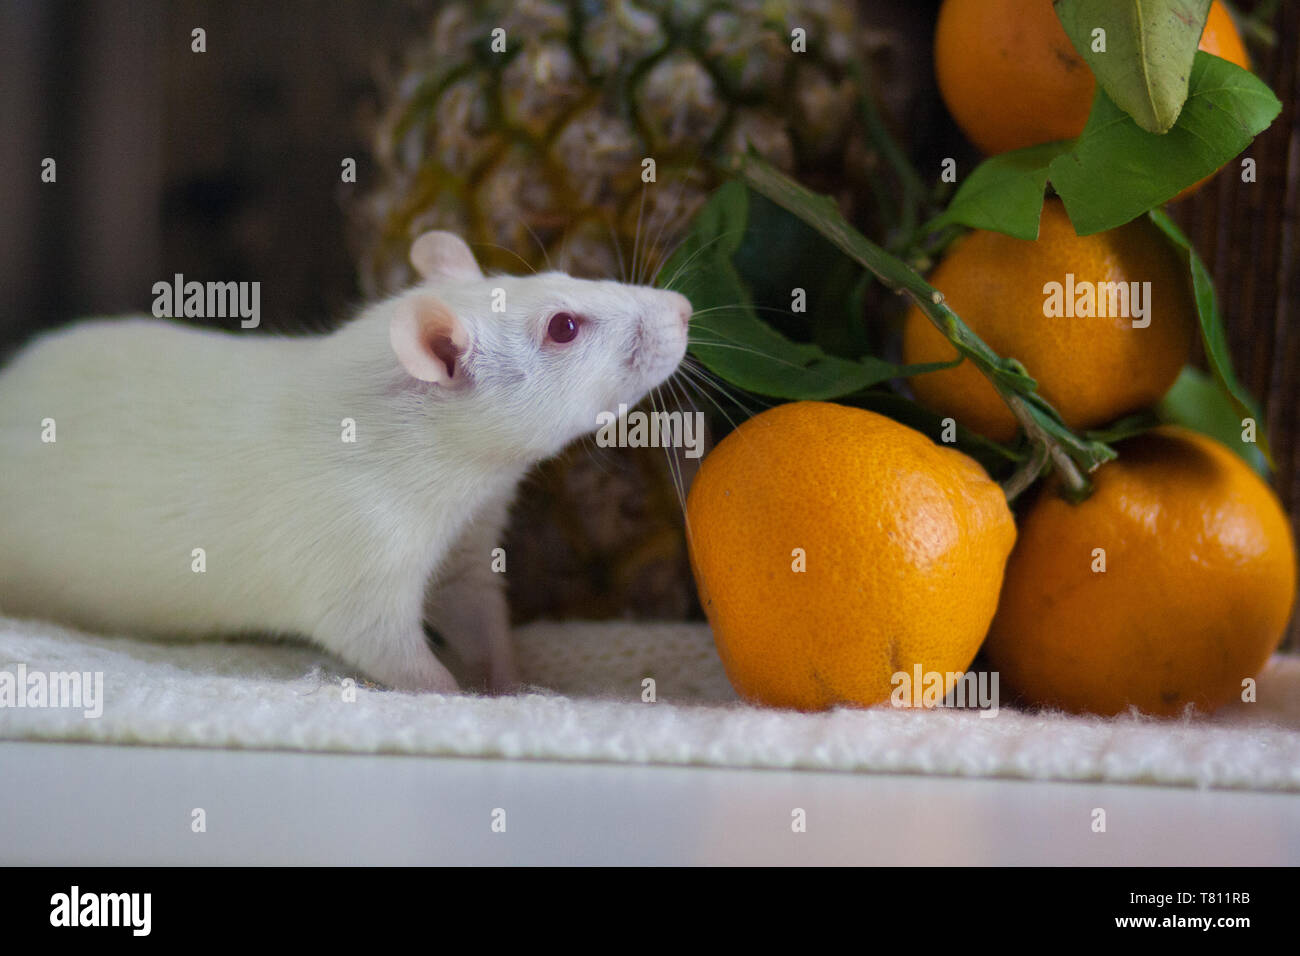 The concept of proper nutrition. Dietary food. Healthy fruits. White mouse. White rat. Mouse and fruit. Rat and food. - Stock Image